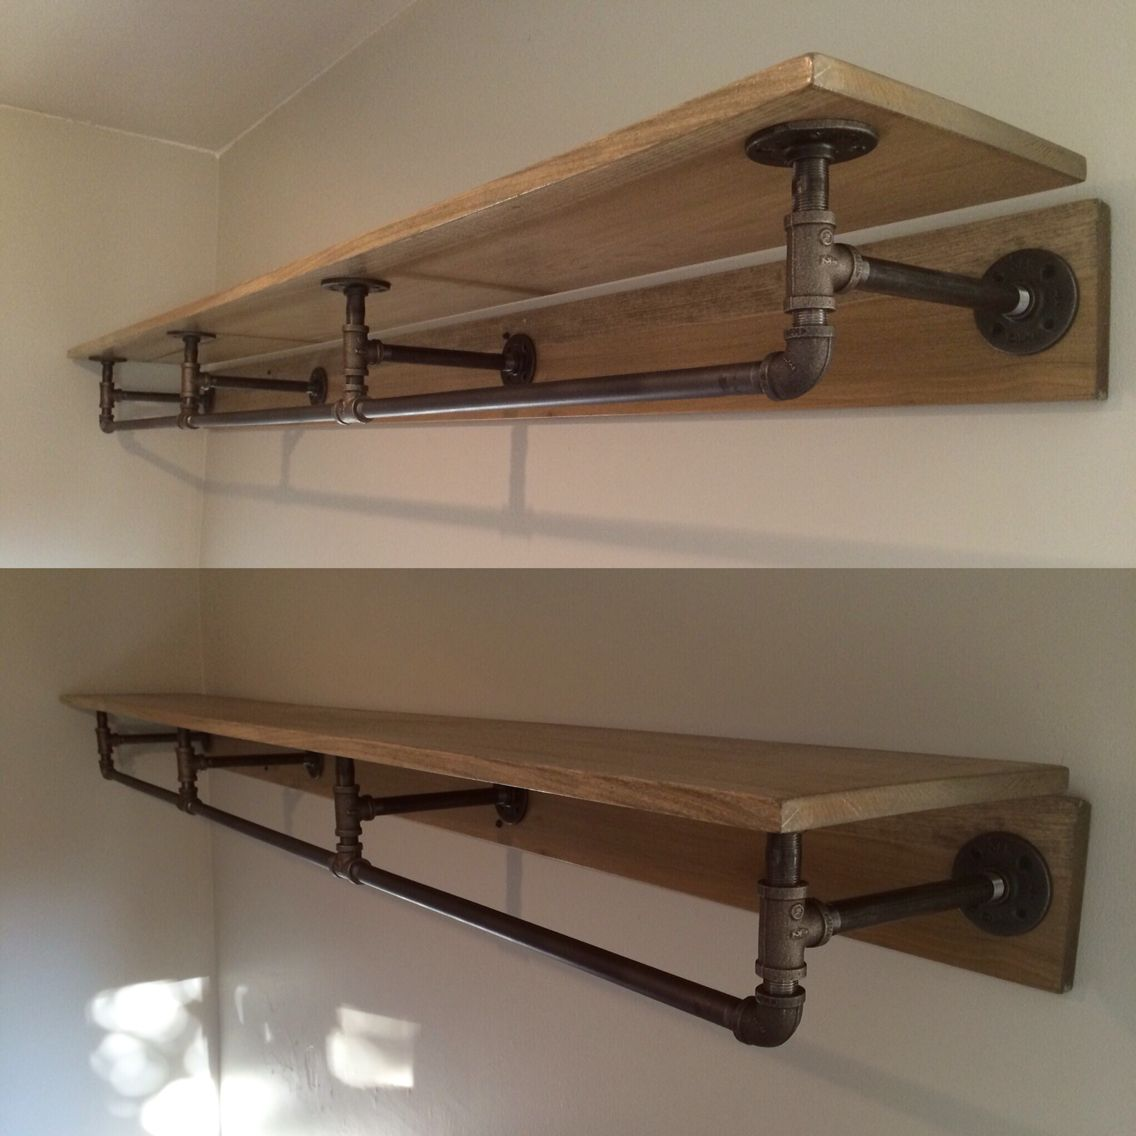 Decorative Industrial Shelving Pipe Shelving Made From Metal Piping And Stained Wood